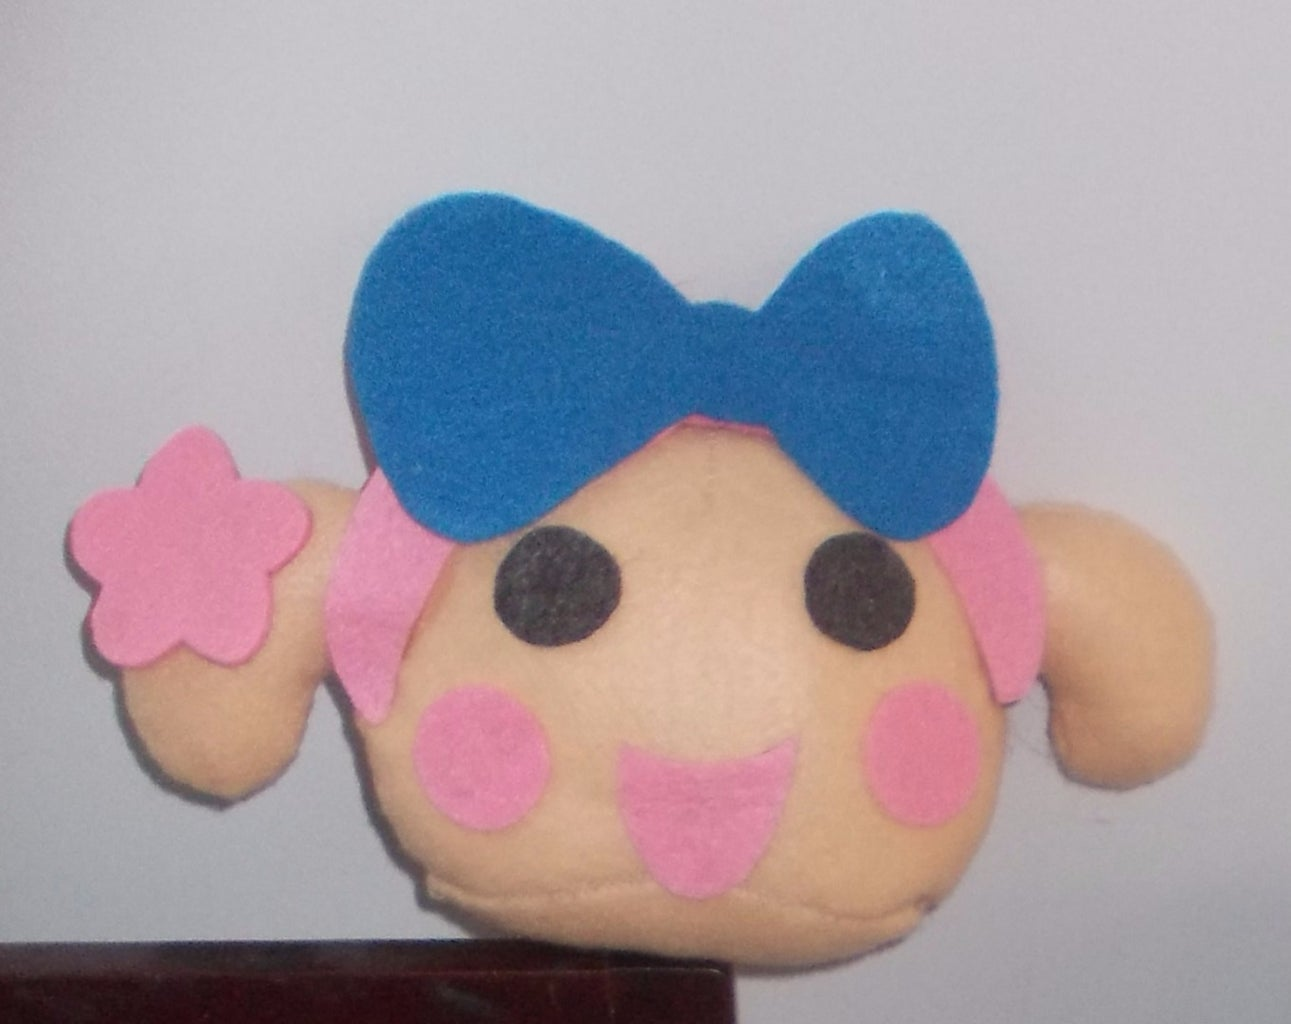 Cut Out the Eyes, Cheeks and Sew Them Like This.